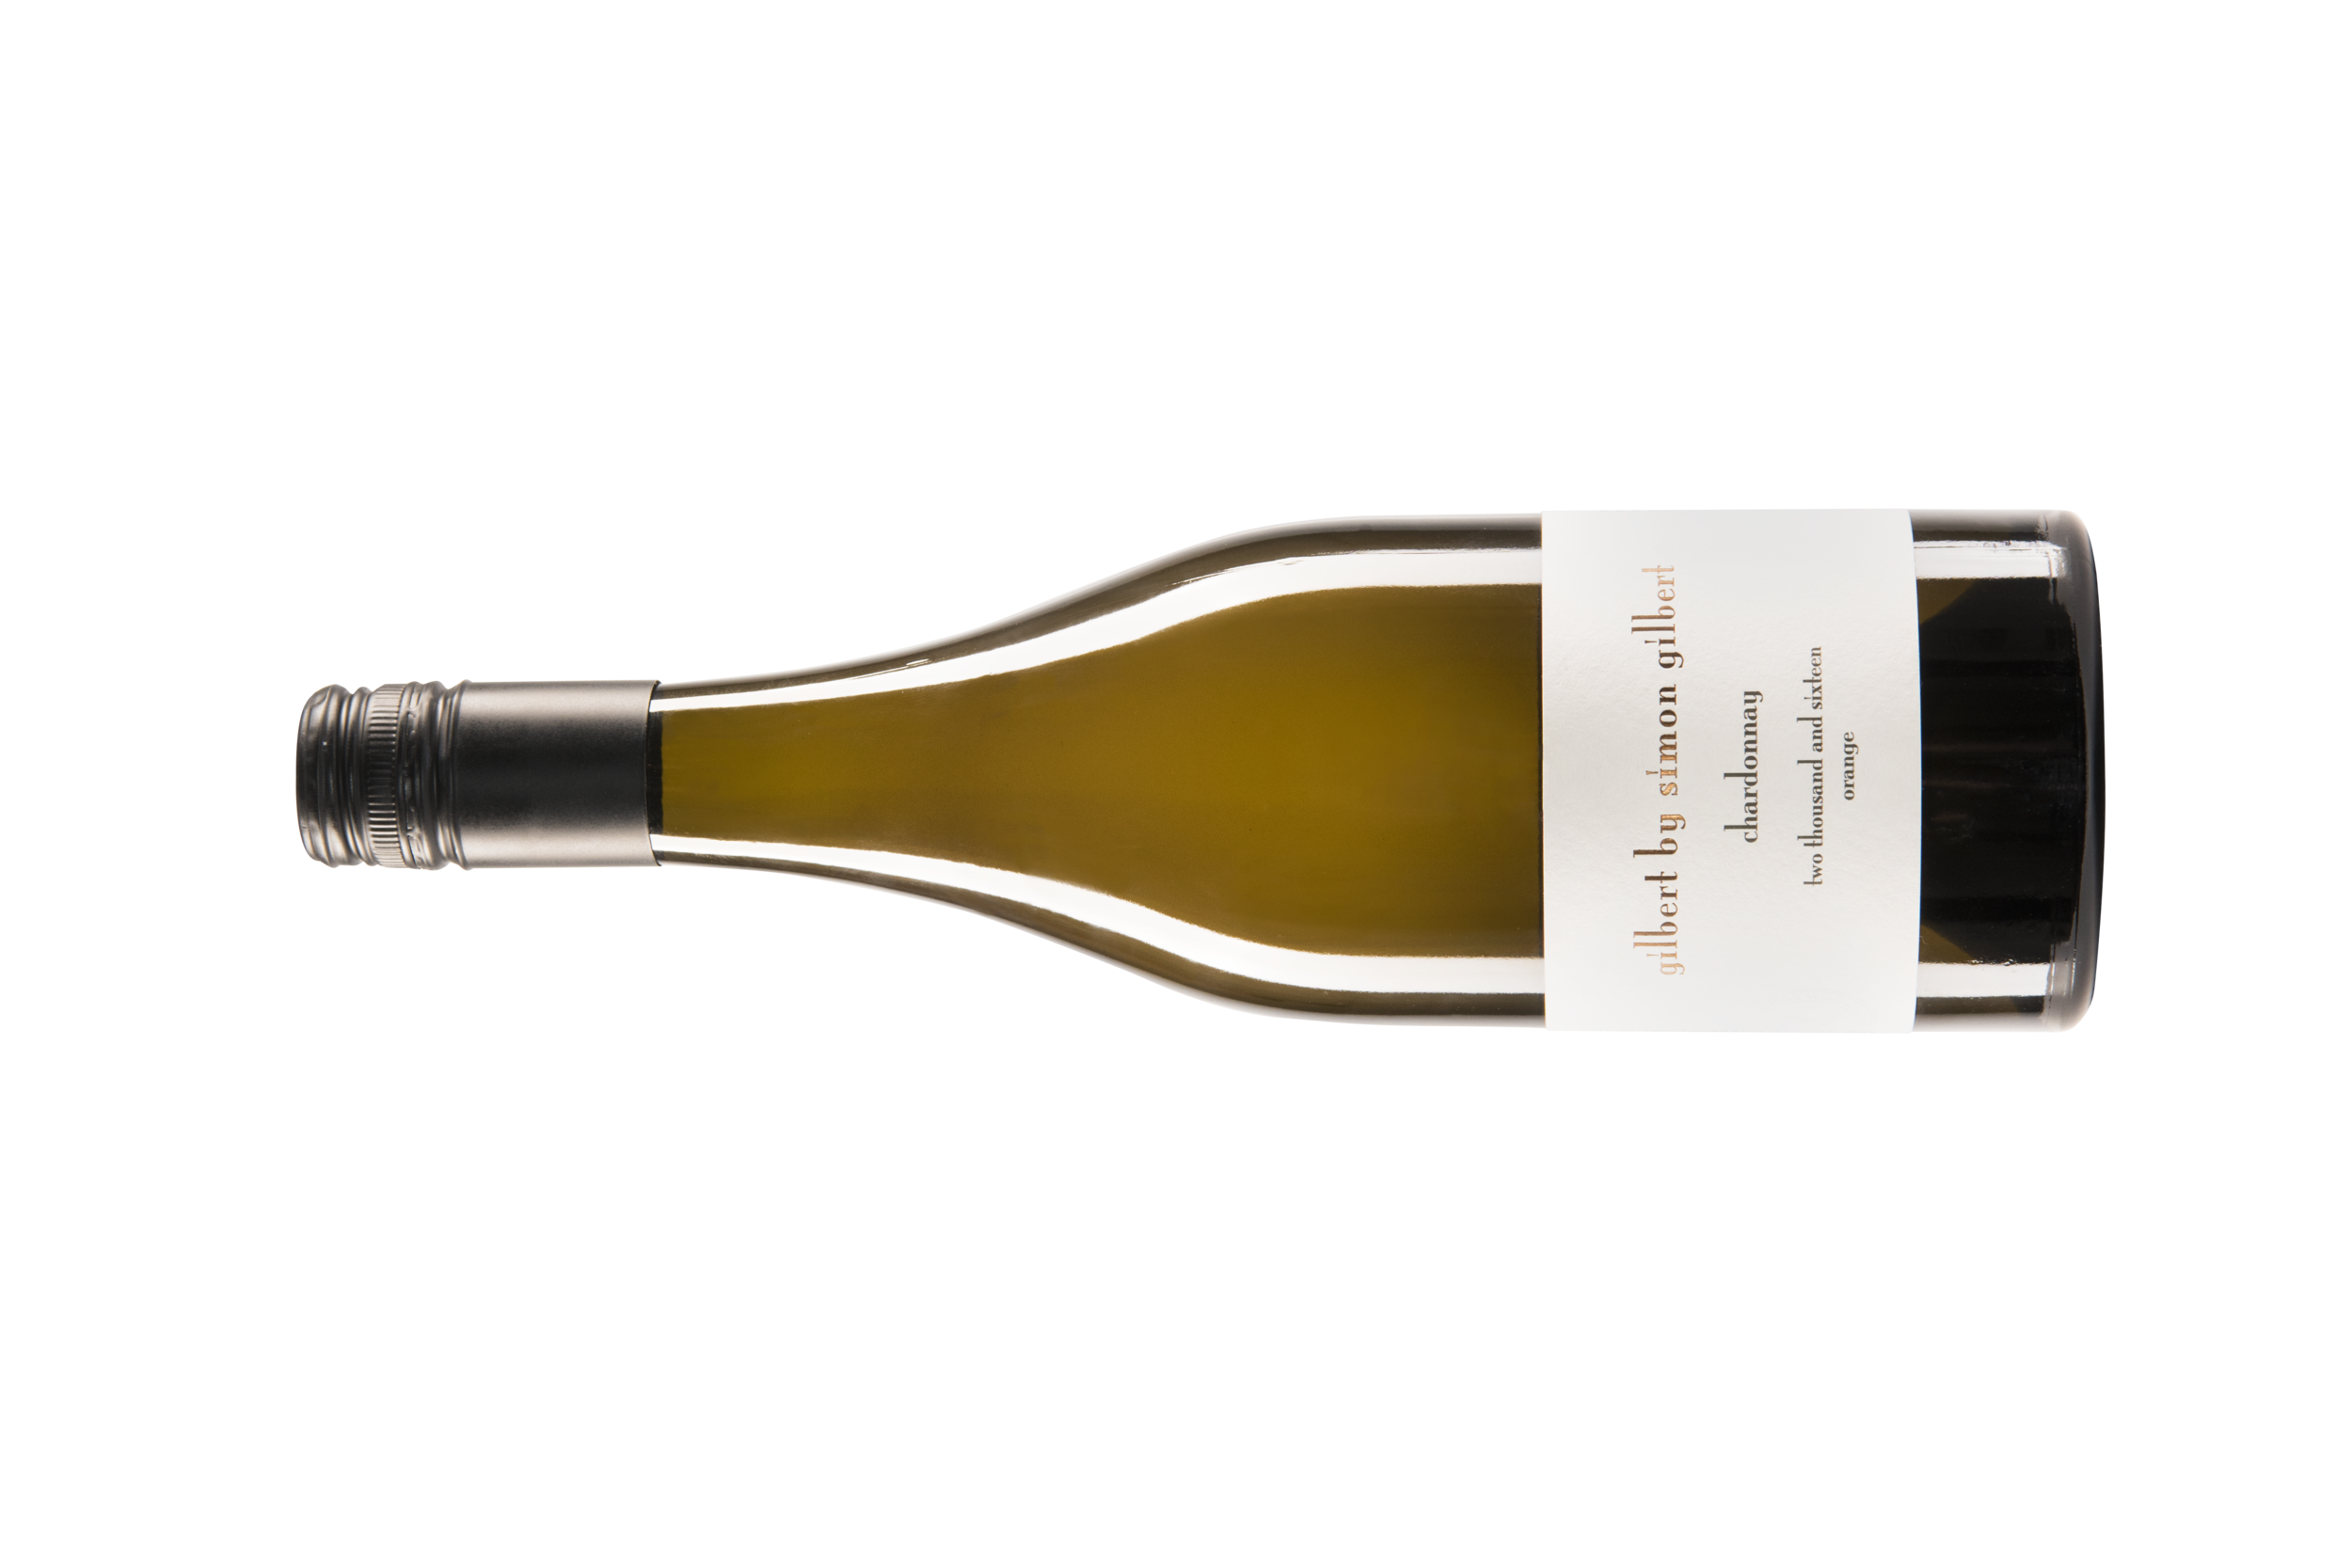 Gilbert + Gilbert Chardonnay     ギルバート + ギルバート シャルドネ   原産地: ボロデル、 オレンジ  希望小売価格: ¥3410  750ml, 2016, 13.%  Destemmed and chilled, cool-fermented in a mix of new and used French oak and a 600l concrete egg, partial mlf, matured for 9 months. Interesting winemaking, and hence wine. It's on the light side of medium-bodied so a dose of new oak wouldn't have worked. The small batch handling, various fermentation vessels and 3 months lees stirring all add up.  徐梗して落ち着かせ、新樽と古樽のフレンチオーク、600リットルの卵型コンクリートタンクで低めの温度で発酵。部分的にマロラクティックを入れ、9か月間熟成。 興味深い造りで、それ故にこのワインとなります。 軽めのミディアムボディの仕上がりを見ると、新樽オークはあまり効いていないようです。 少量ずつ扱うこと、さまざまな発酵タンクを使うこと、3か月のバトナージュがすべてを合わせあげています。 James Halliday 93 points